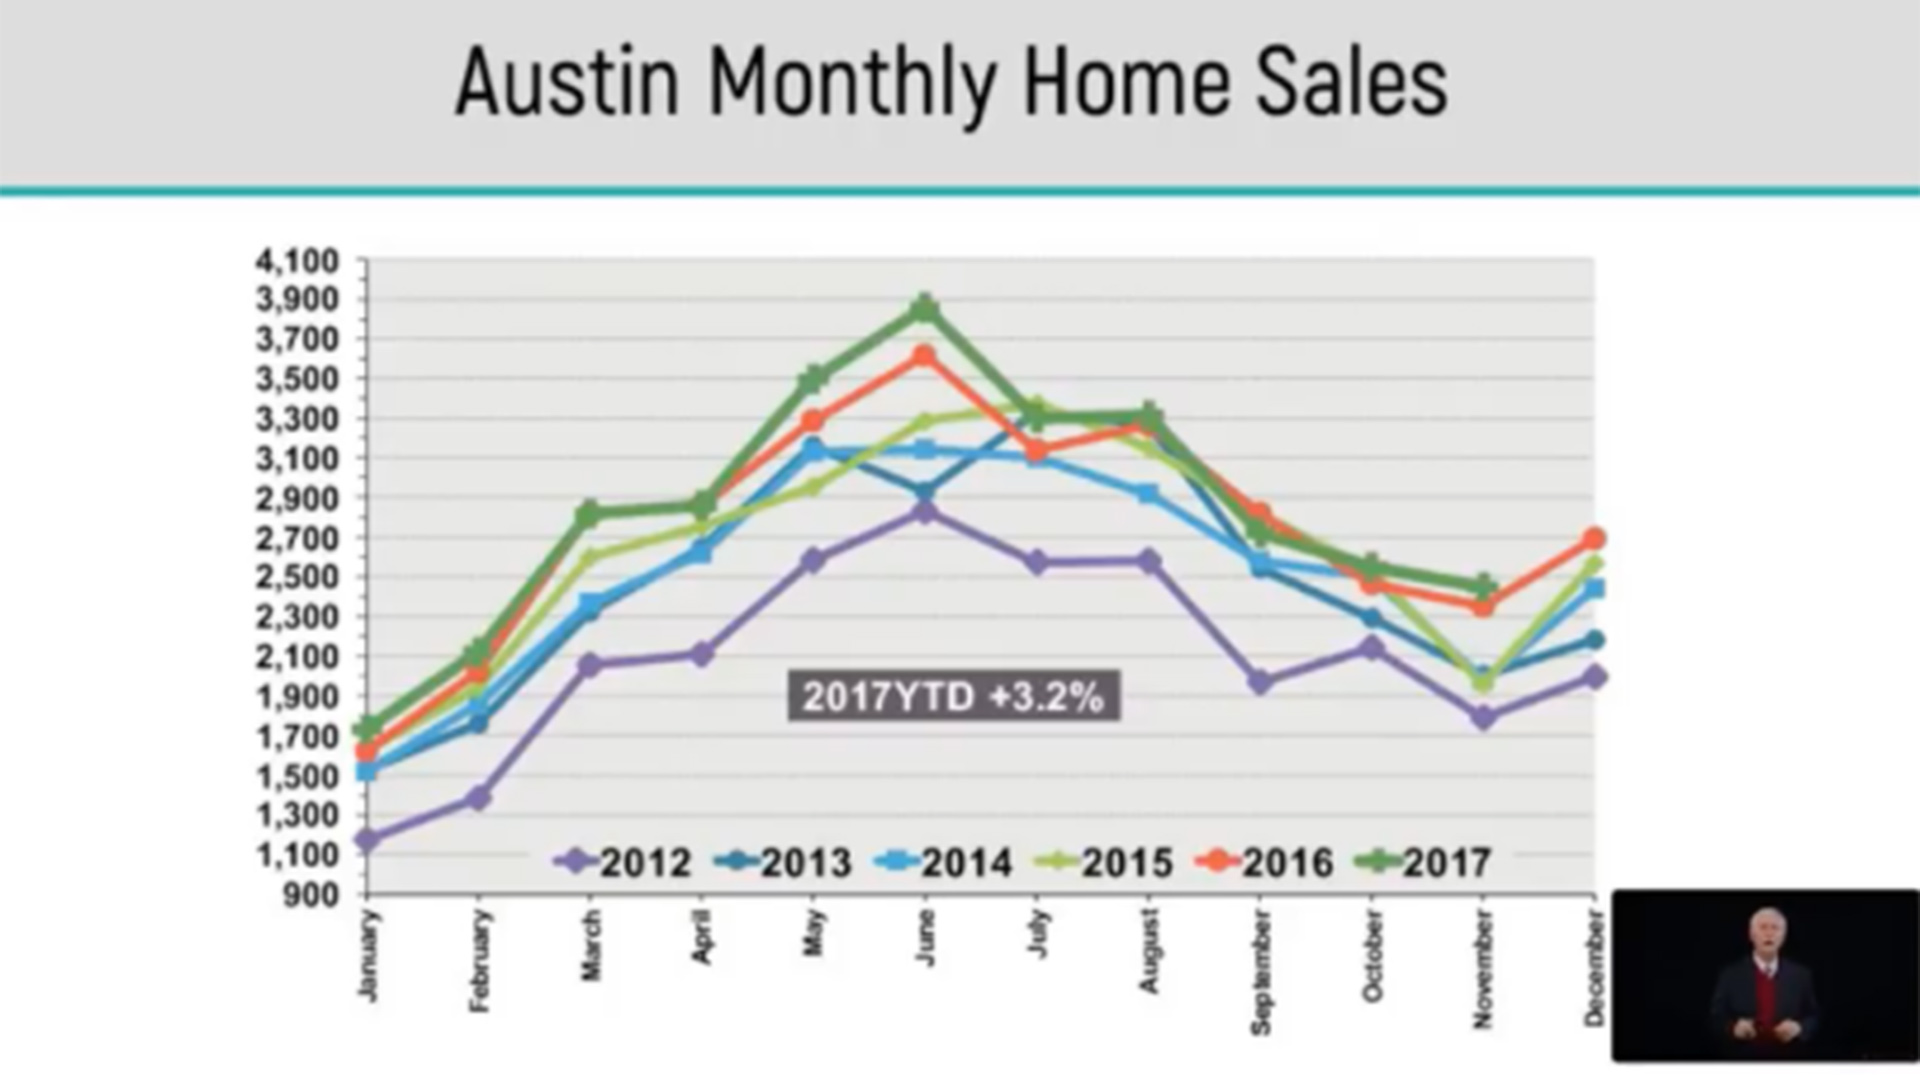 Image of Austin Monthly Home Sales Chart